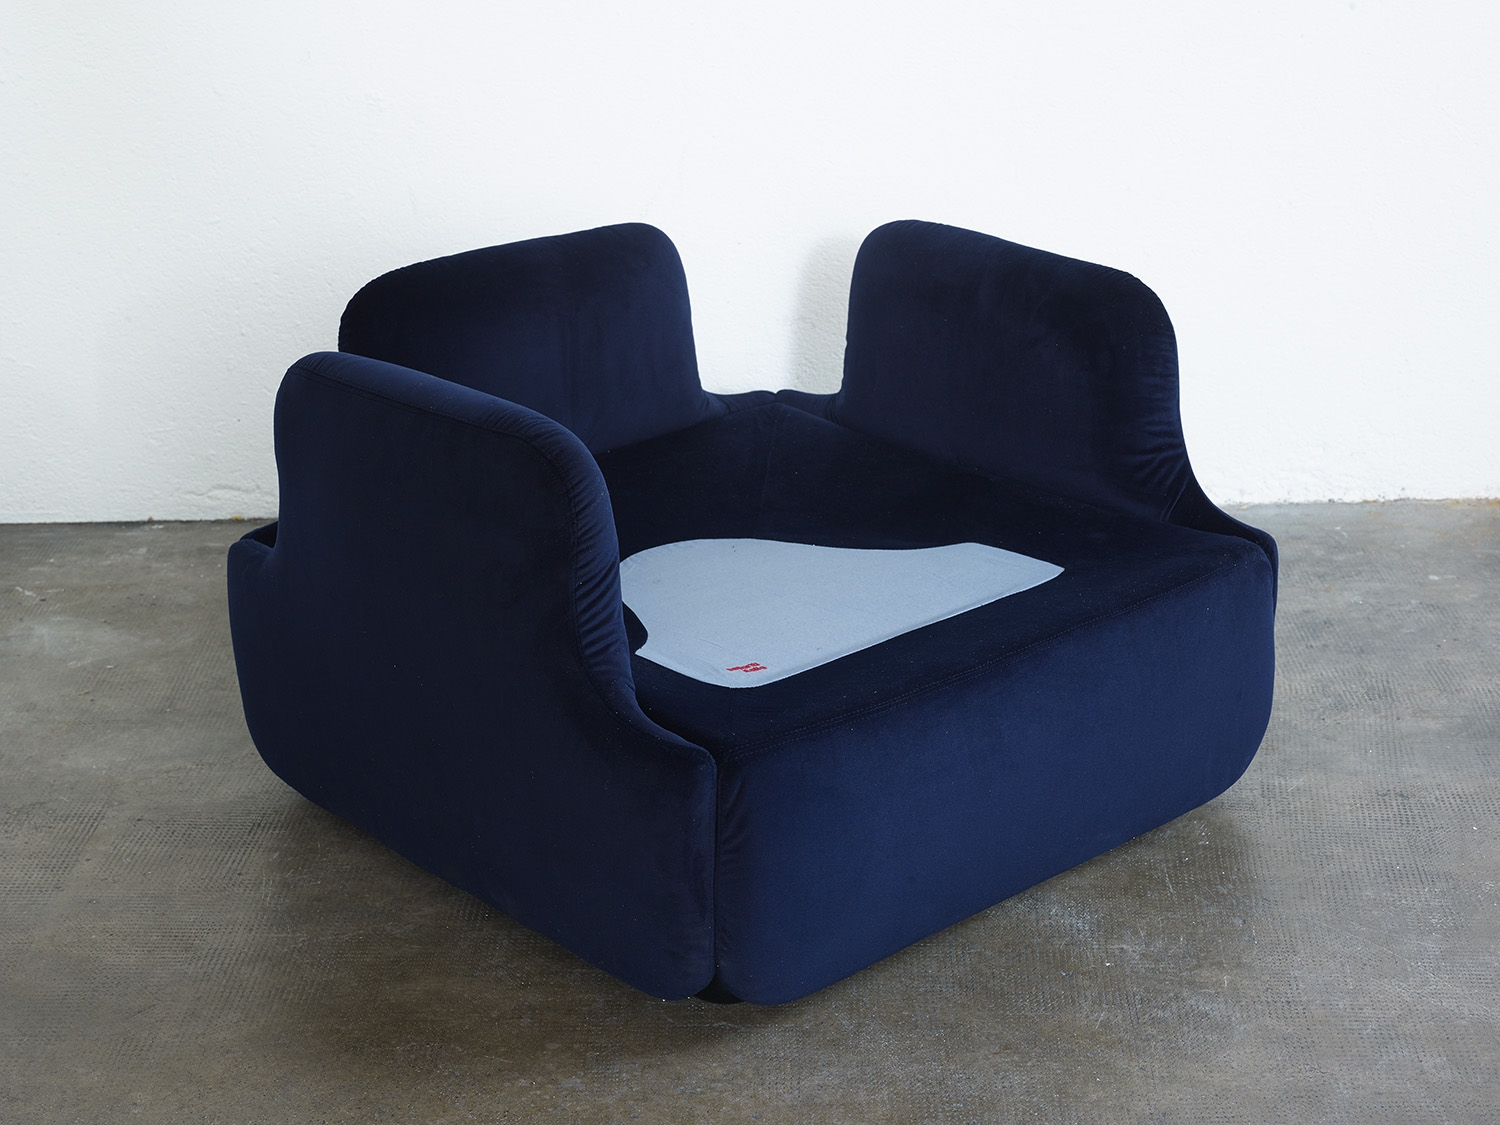 pair-of-confidential-lounge-chairs-by-alberto-rosselli-for-saporiti-1972-image-06